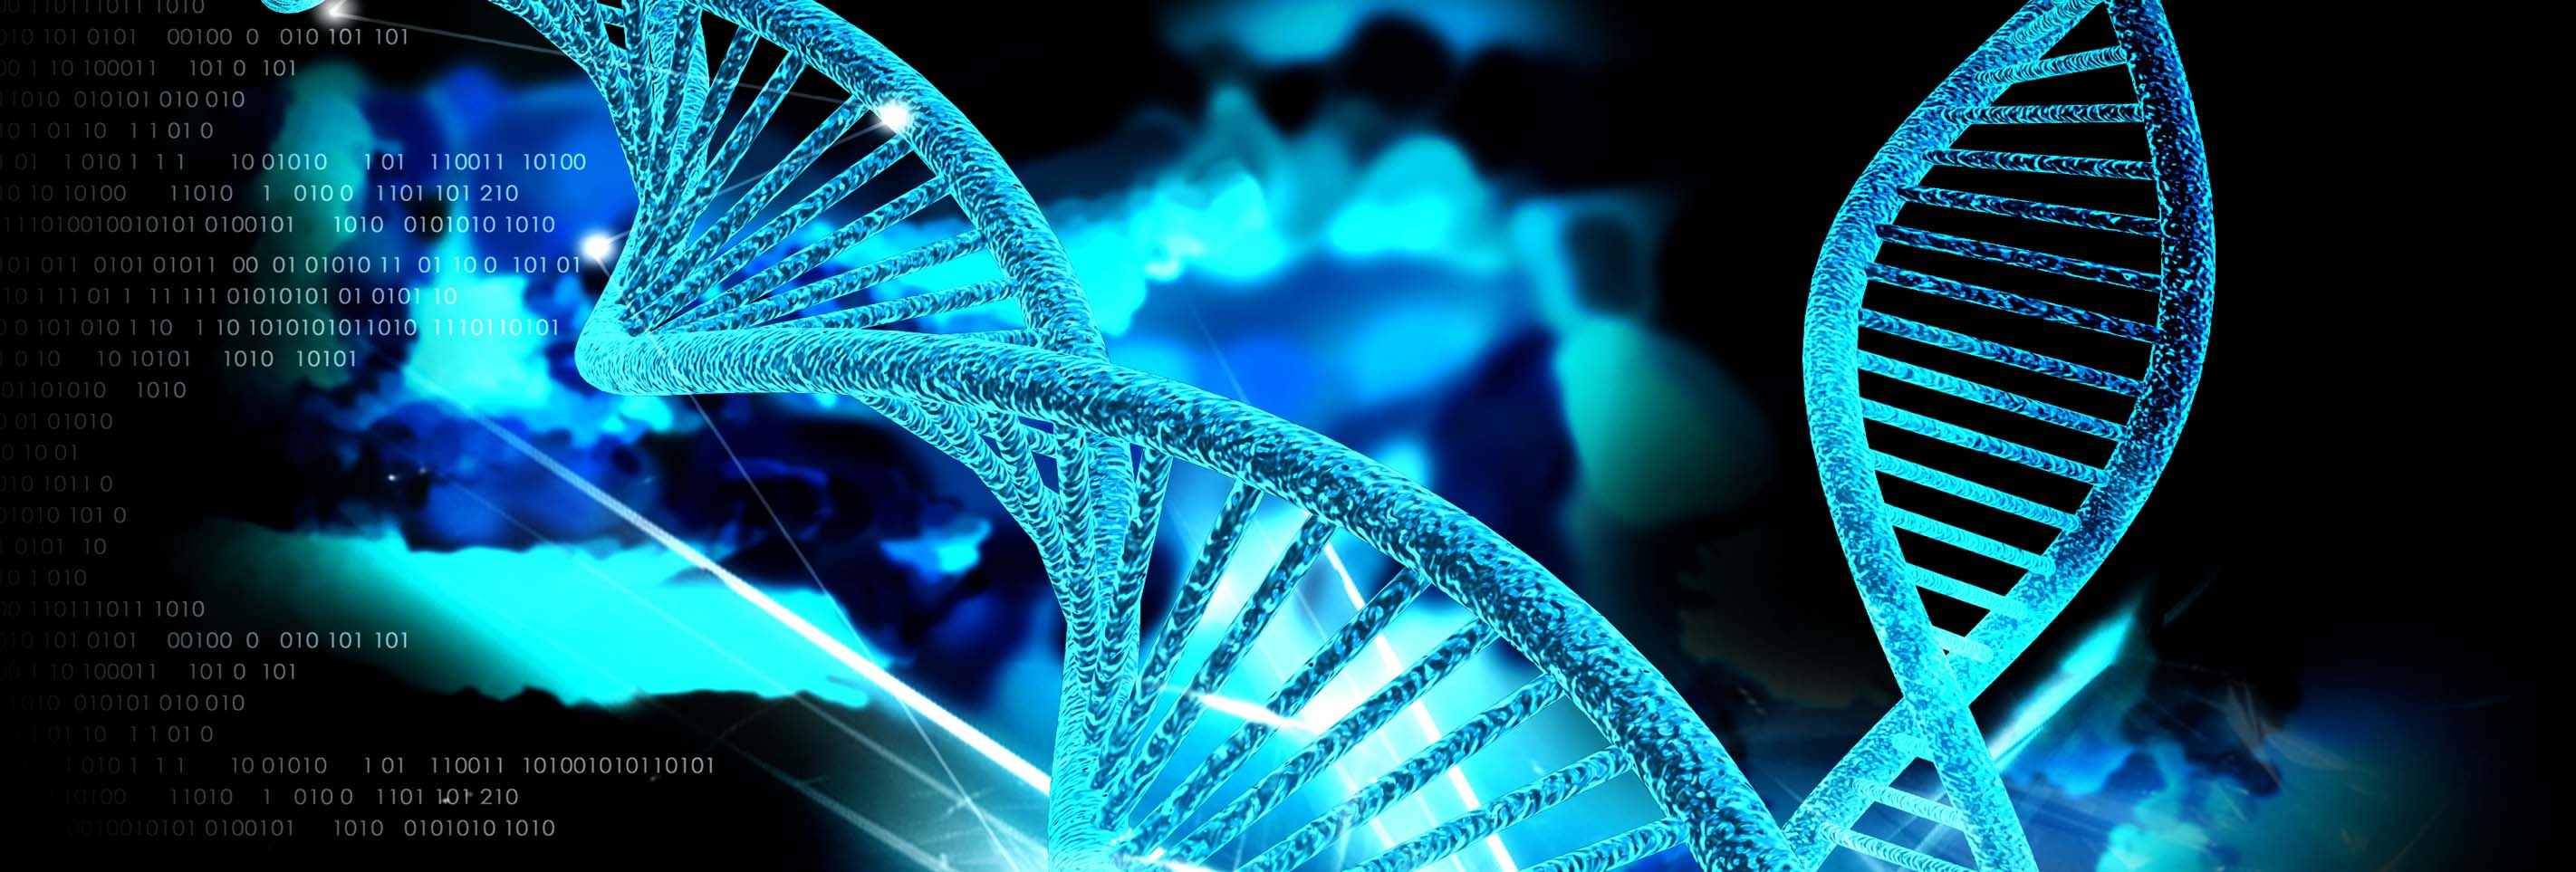 dna and evidence The dar accepts y-dna evidence in support of new member applications and supplemental applications y-dna evidence submitted along with other documentation will be considered along with all of the other source documentation provided to prove heritage.